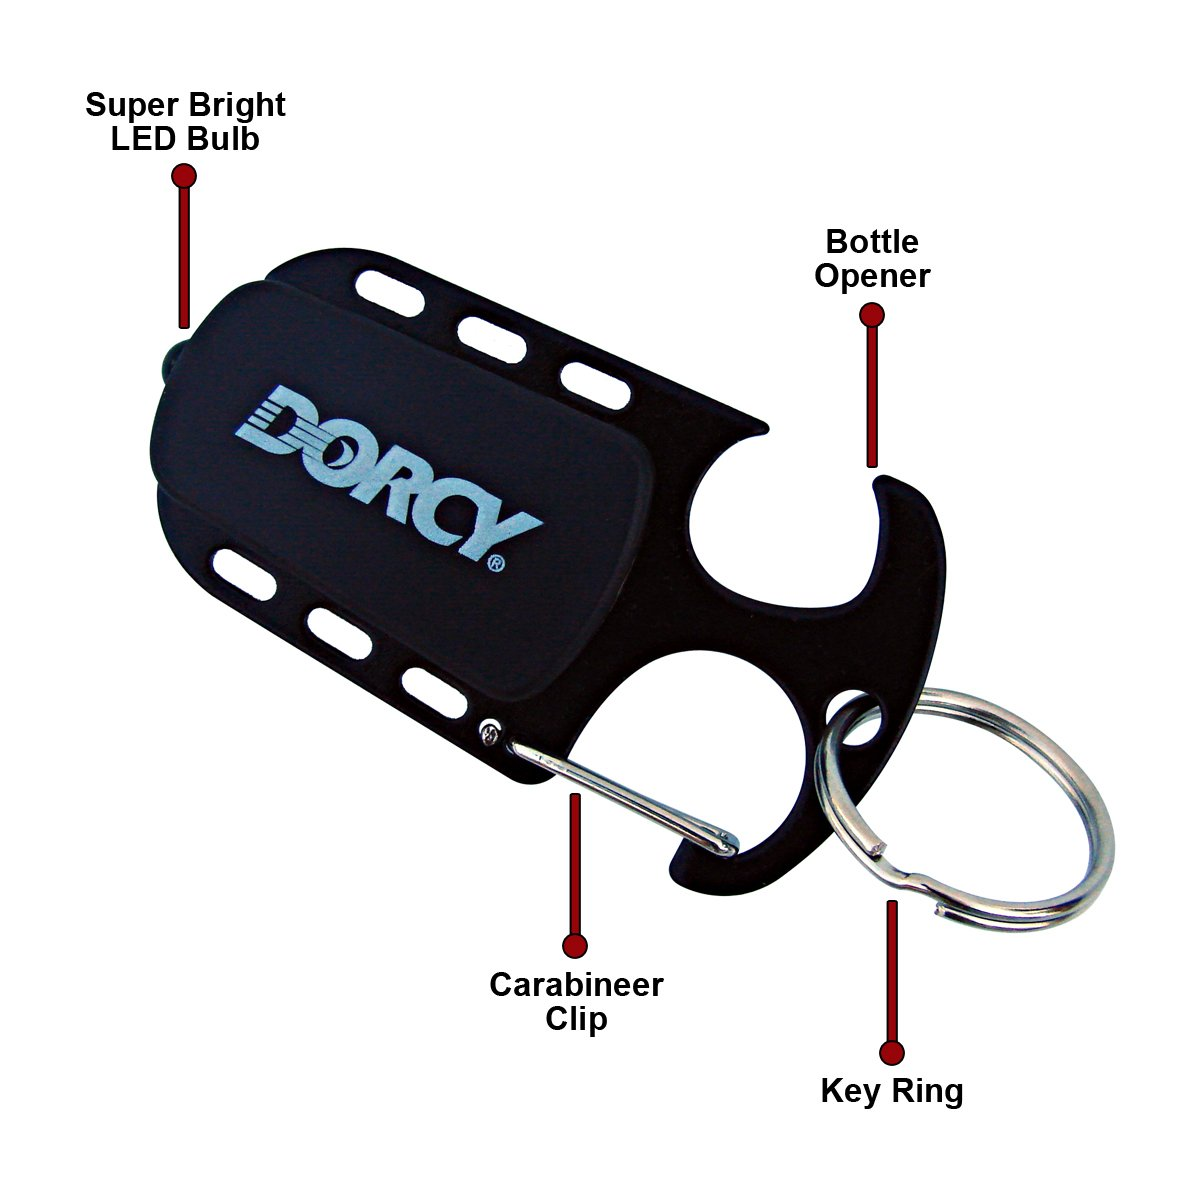 11-Lumens Dorcy 41-1411 Carabineer Clip Keychain LED Flashlight with Bottle Opener Assorted Colors